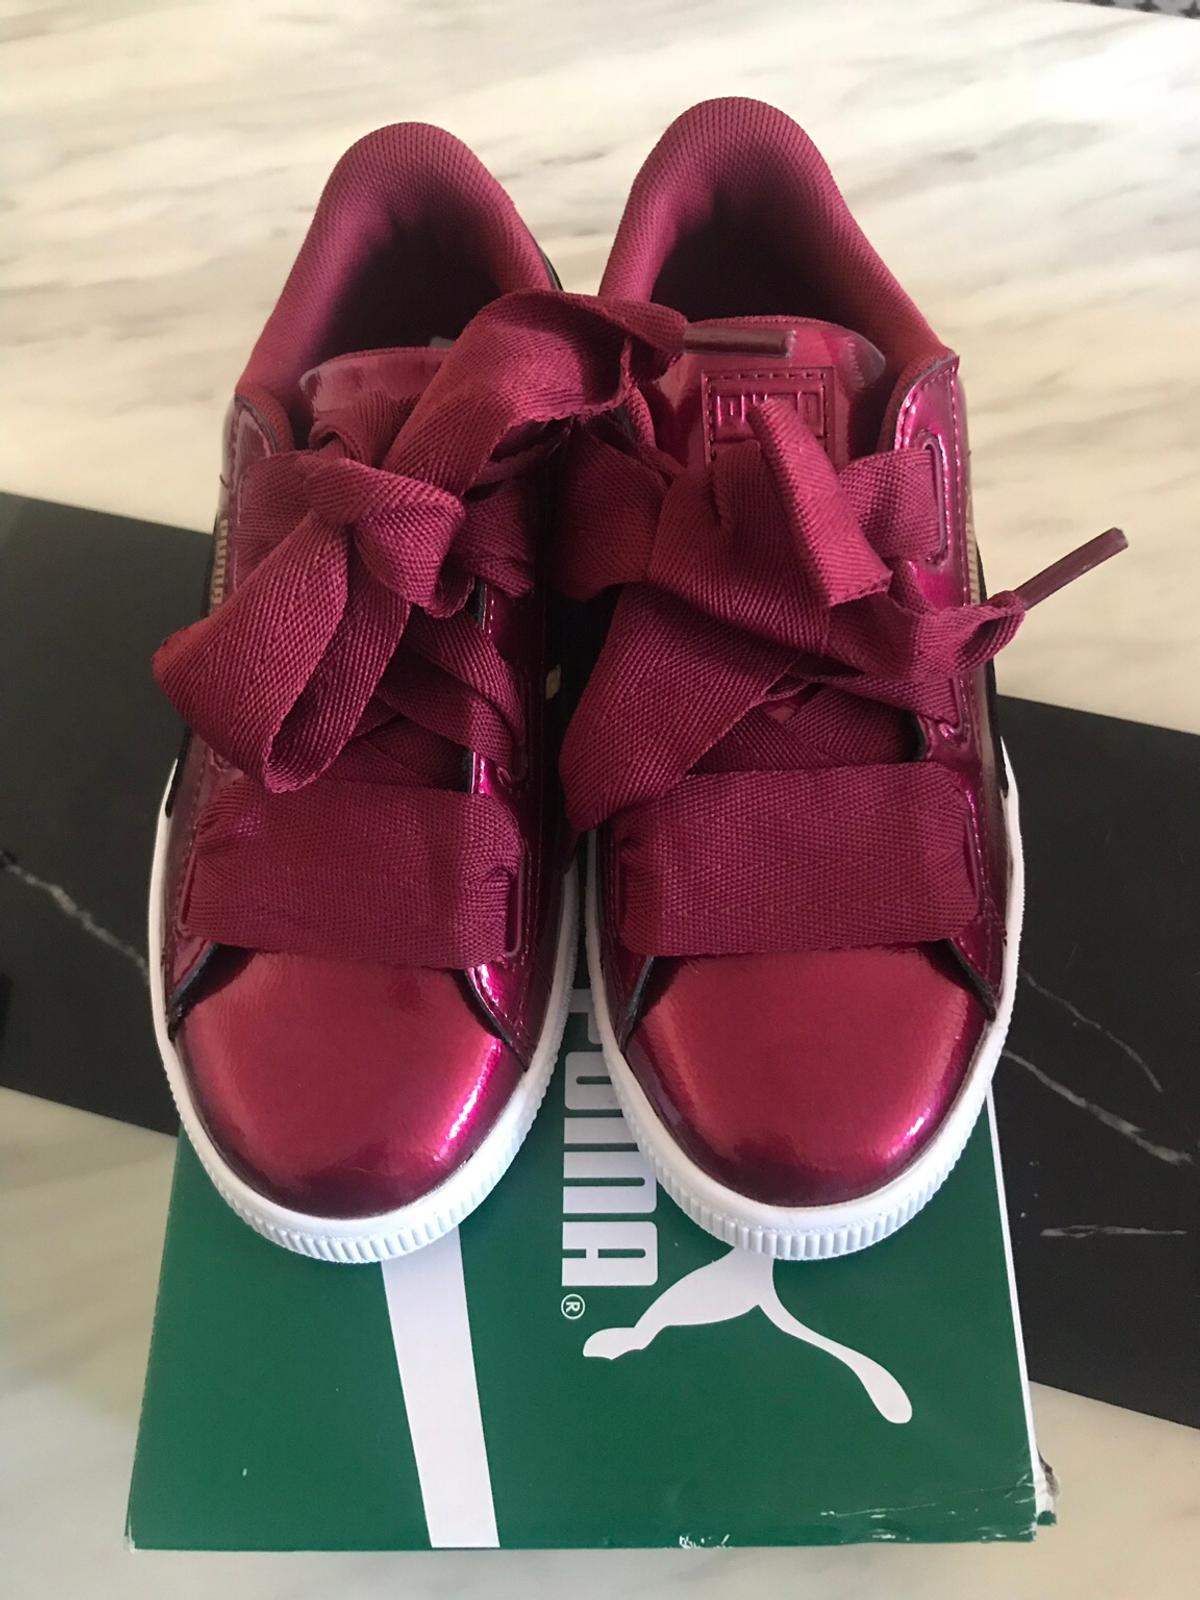 separation shoes b9cc1 443df Puma Basket heart glam Tibetan Red size 2 in N1 Islington ...